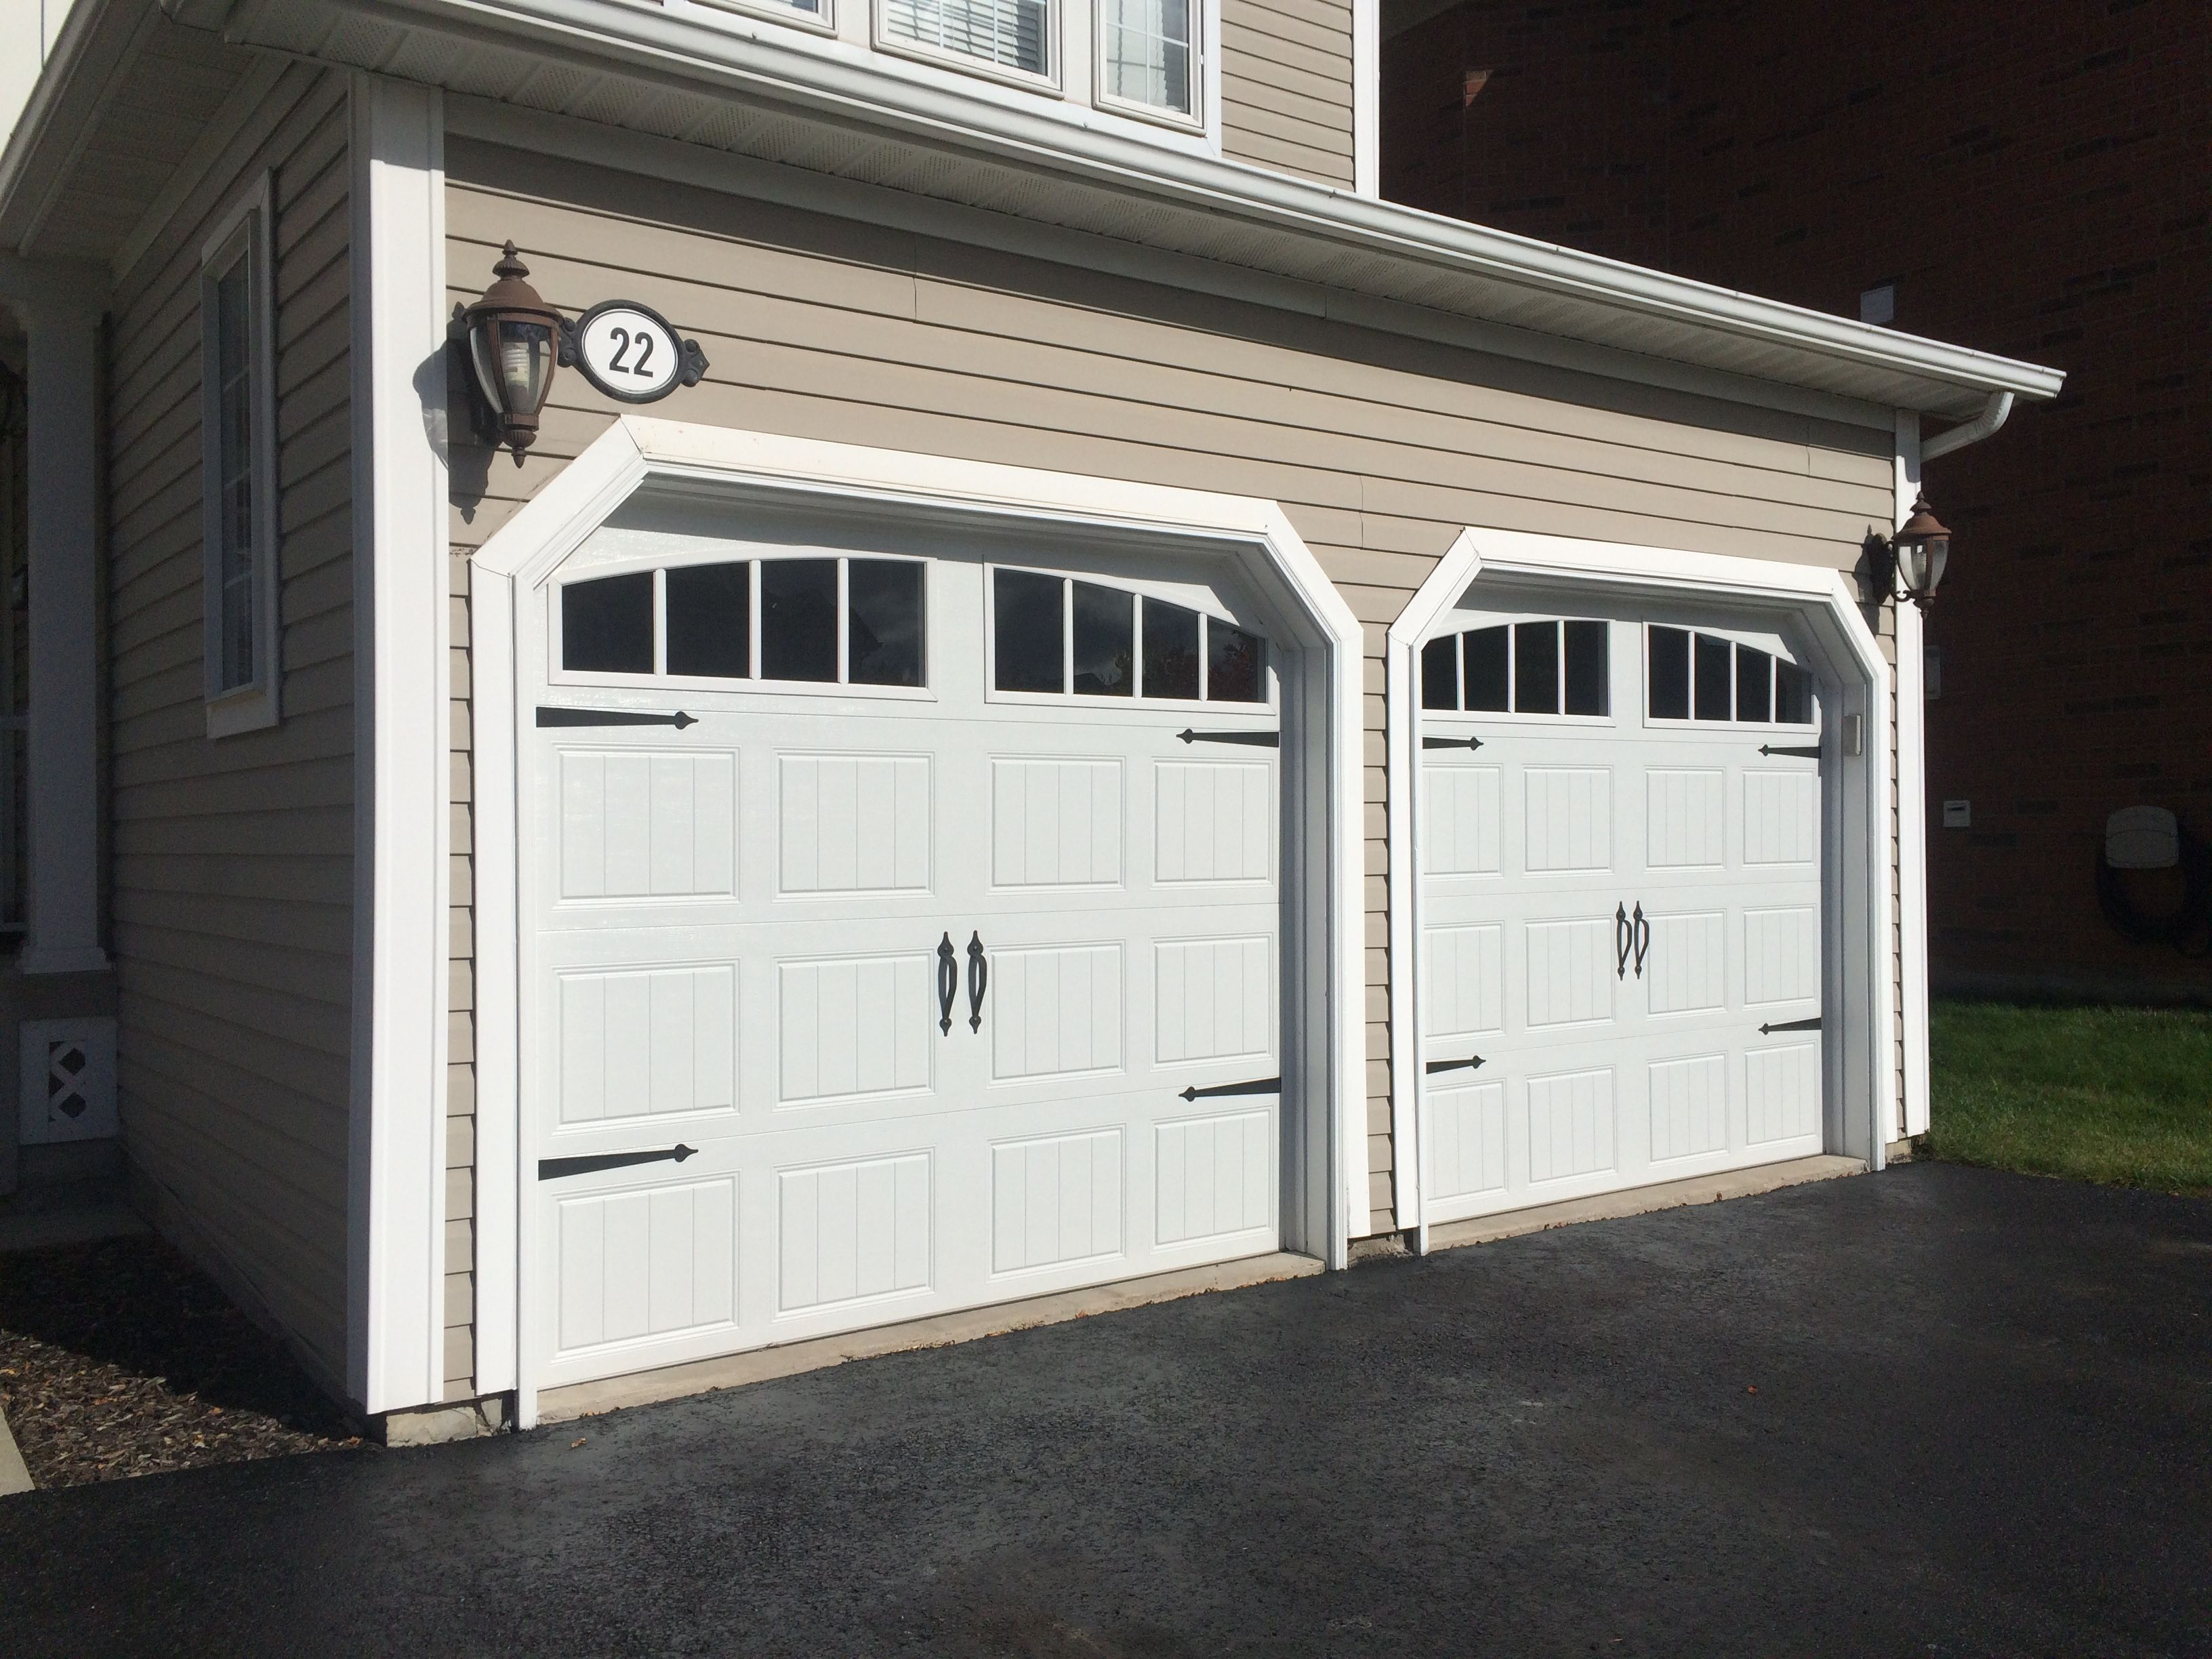 Clopay garage door replacement and install dave moseley for Clopay steel garage doors